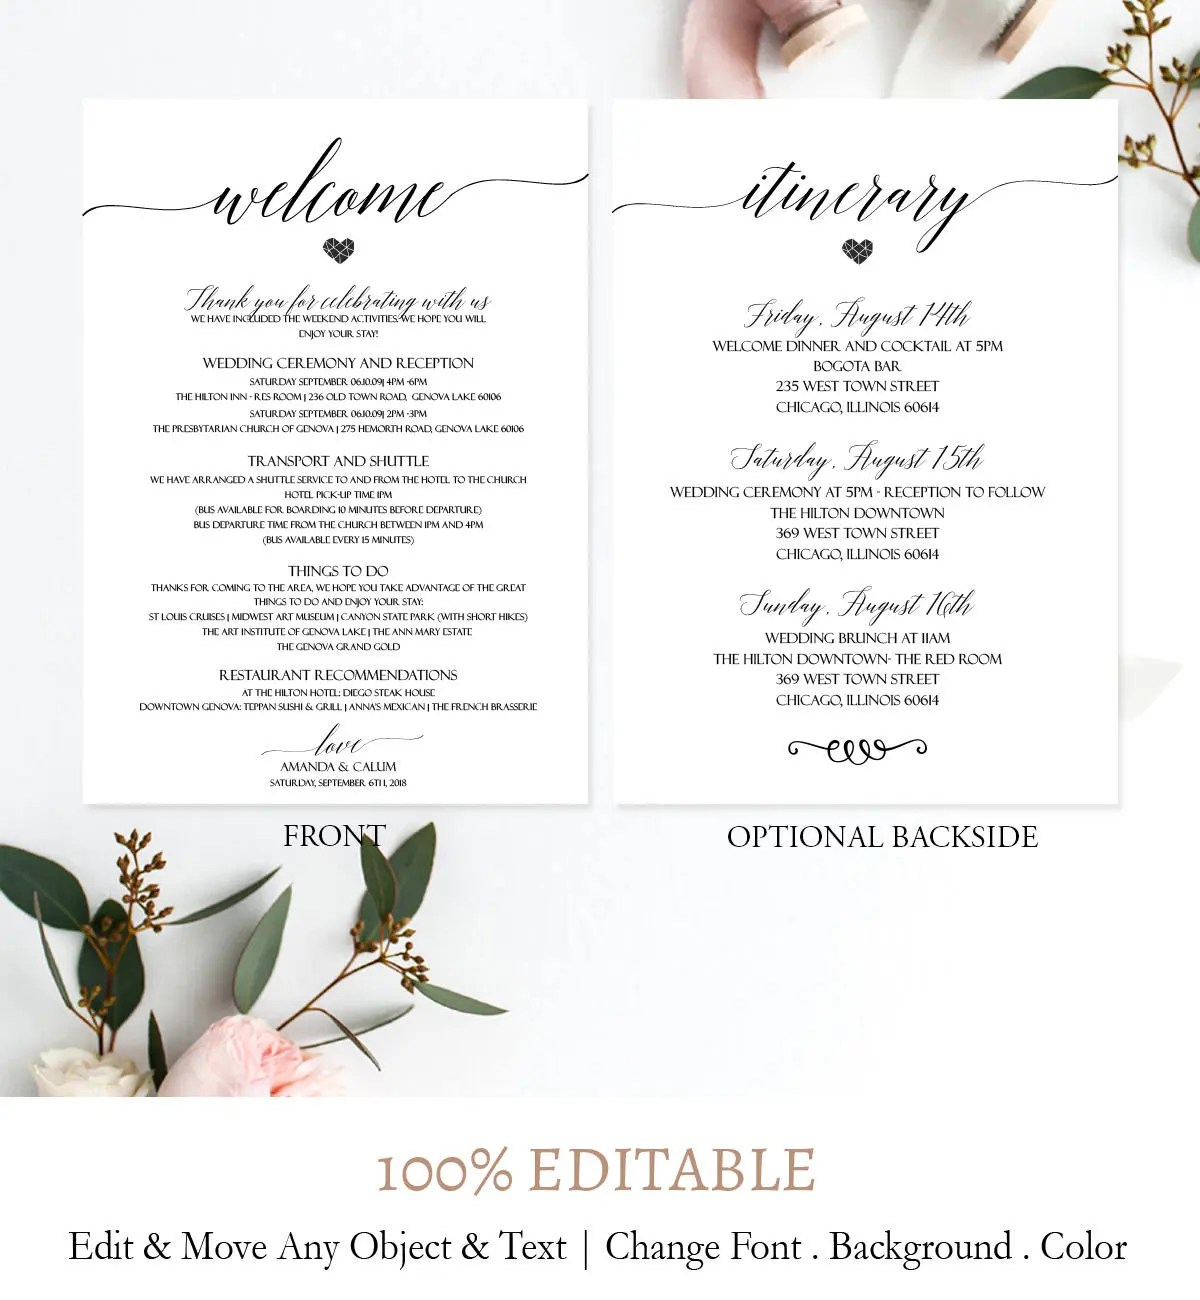 Simple Welcome Letter Template Elegant Wedding itinerary Etsy